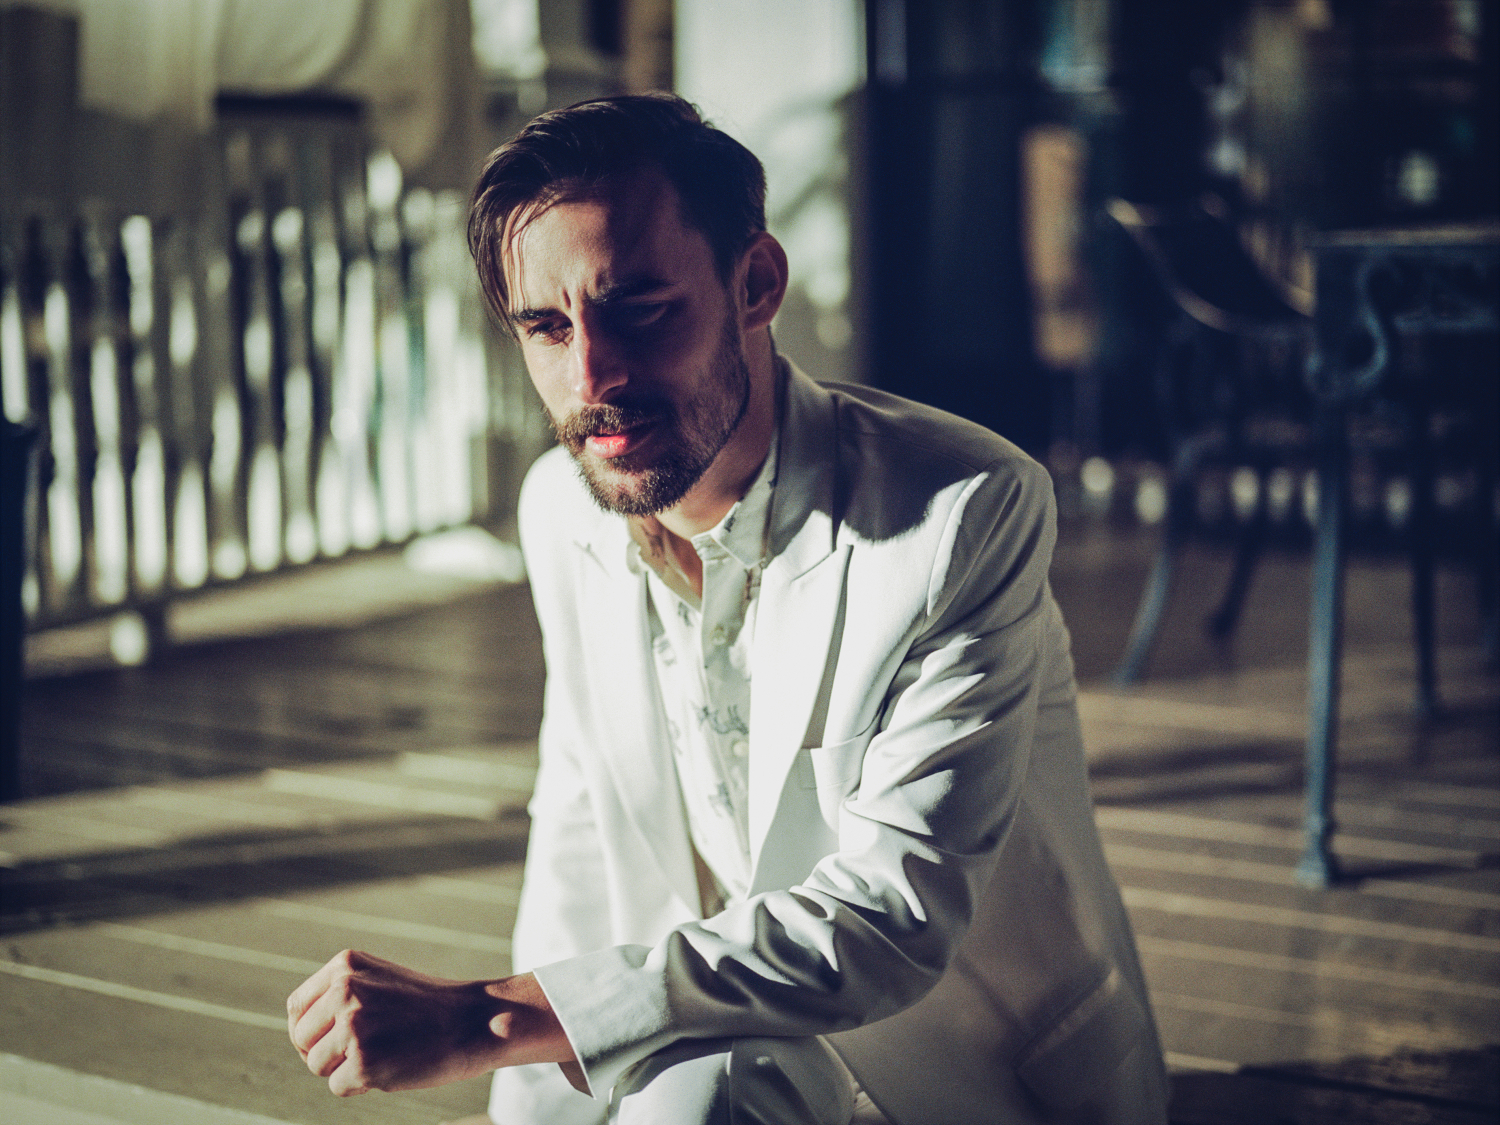 Robert Ellis' European dates coming up!